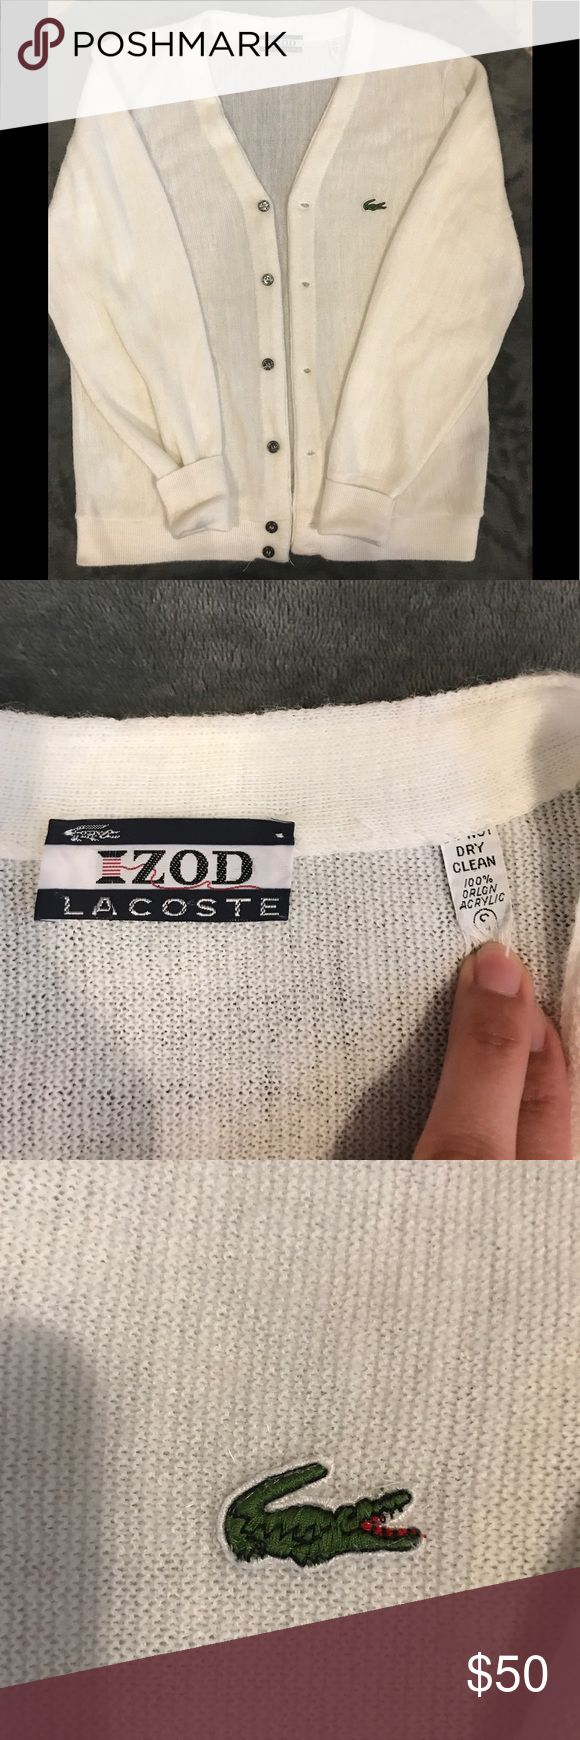 Vintage IZOD Lacoste Cardigan Vintage Lacoste men's white cardigan. Really excellent condition and a classic. Approximately 23 1/2 in length. Lacoste Sweaters Cardigan